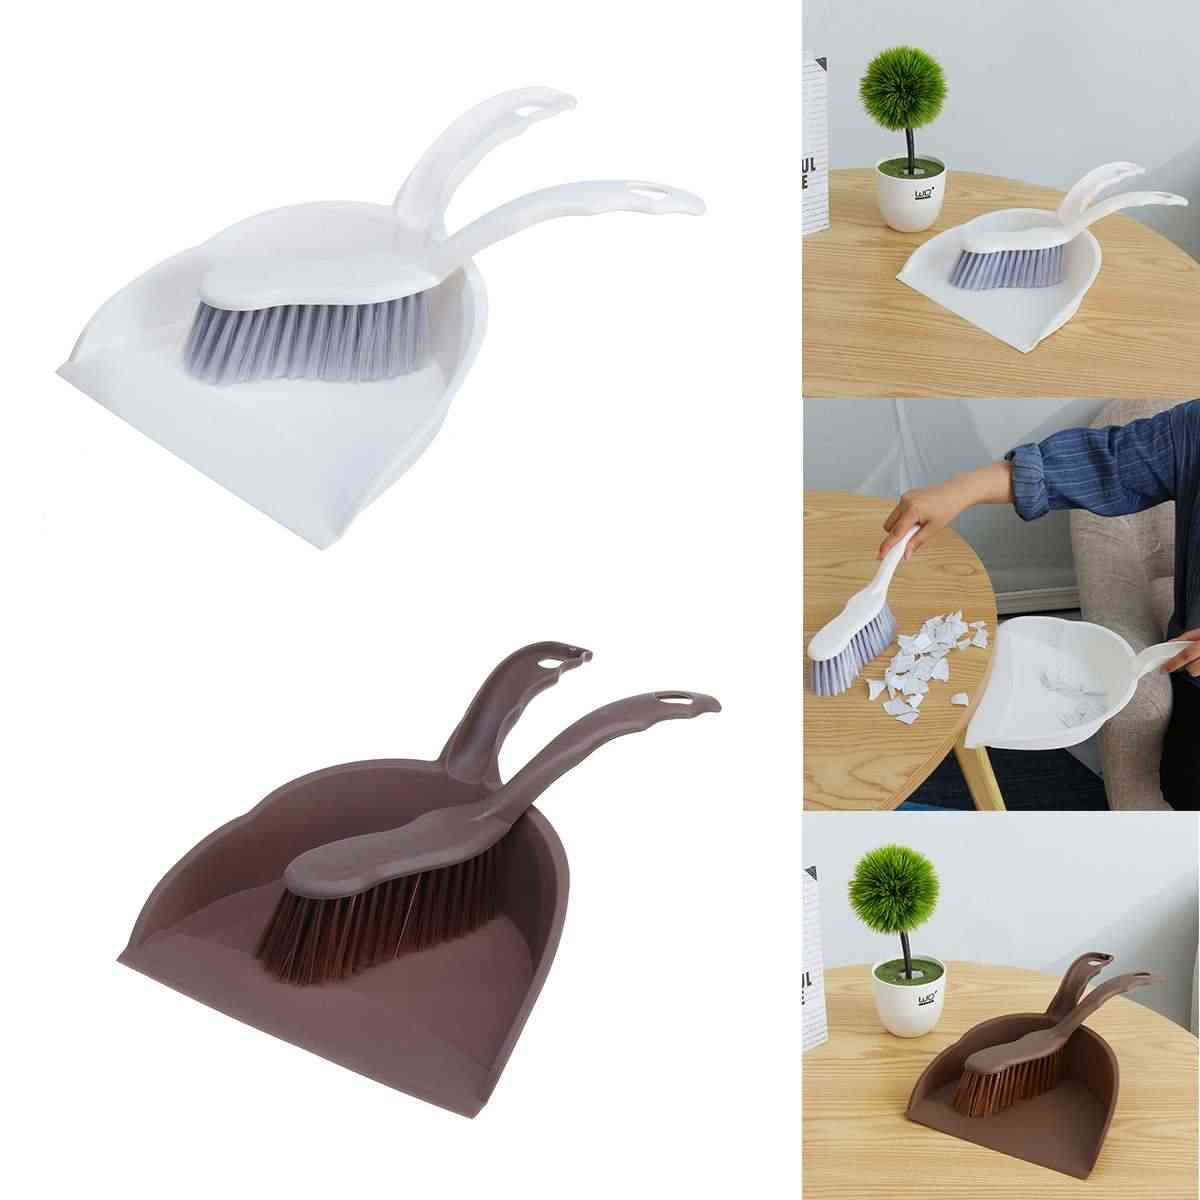 Mini Sweeping Brush Cleaning Small Broom Pan Set Home Office Table Cleaning  Tools Desk Portable Dustpan Shovel Brush Set